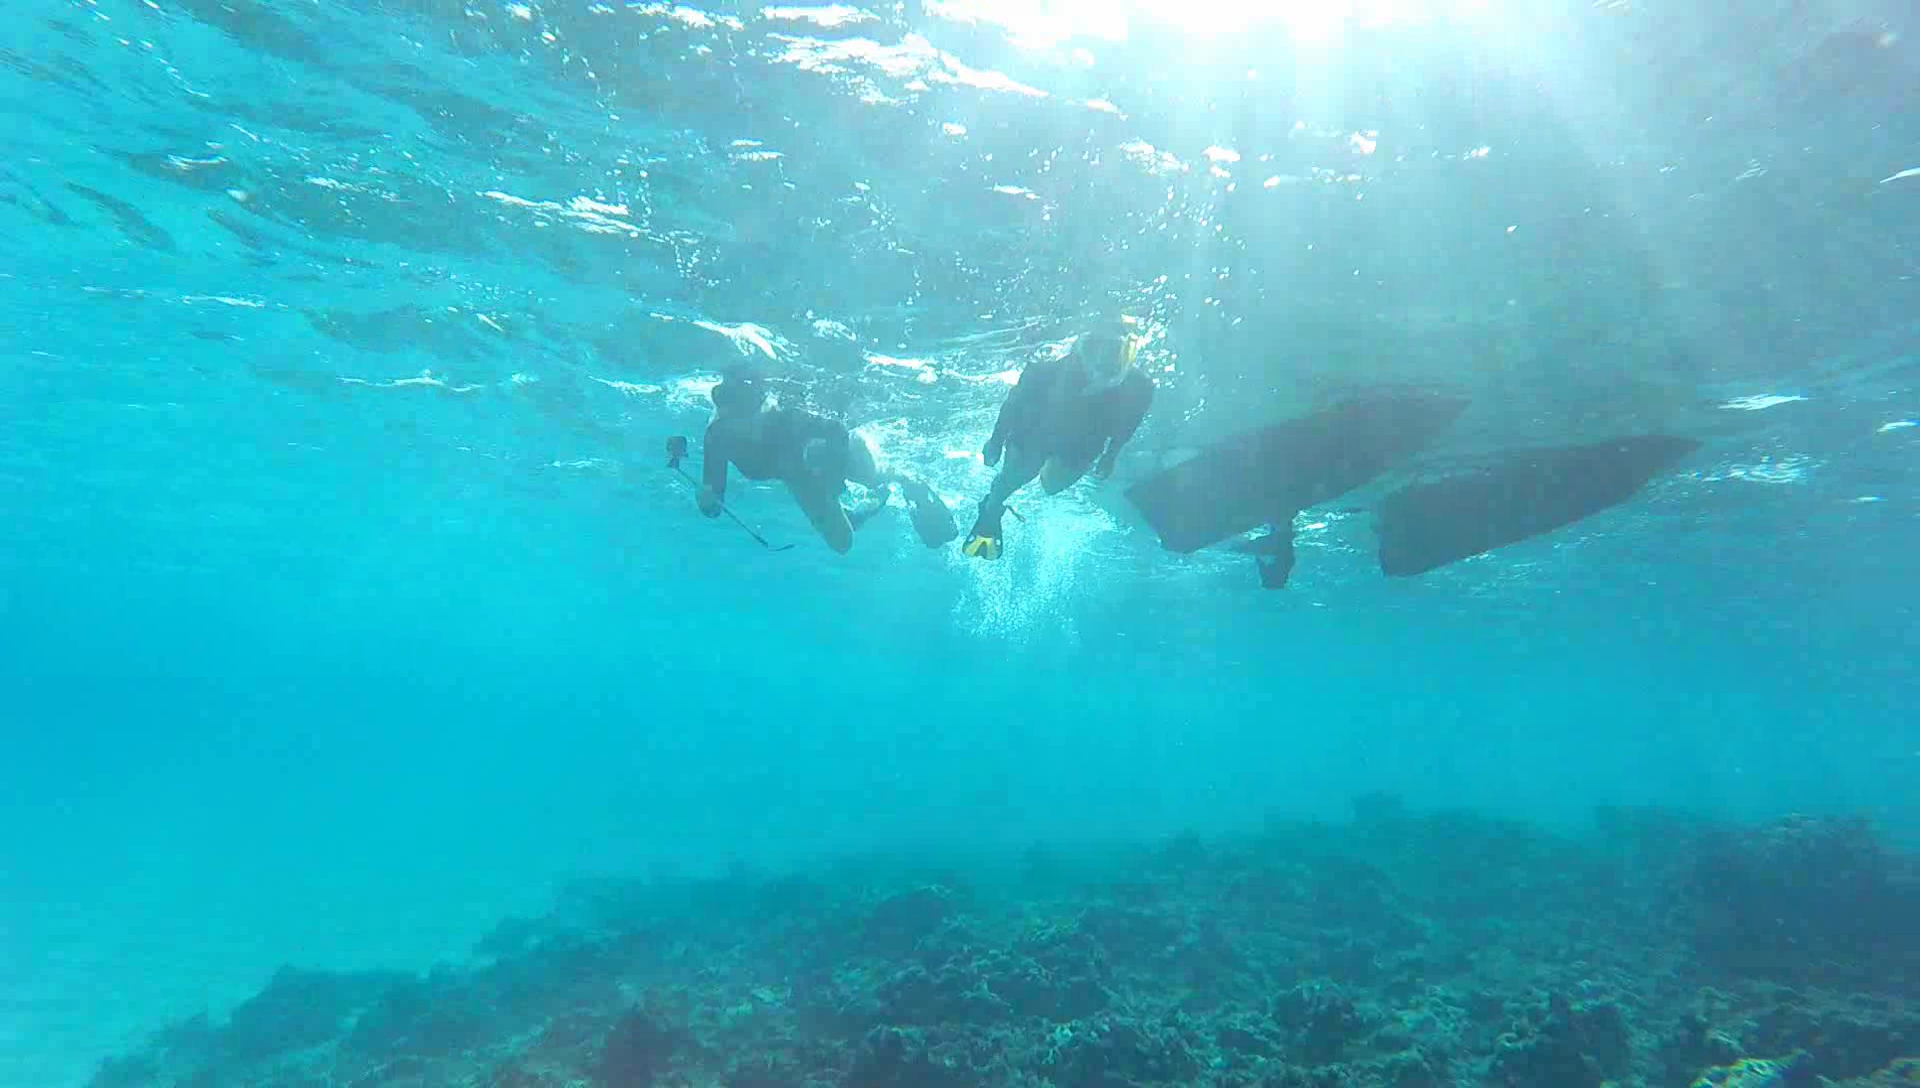 Holly and I snorkeling, the water is so clear.